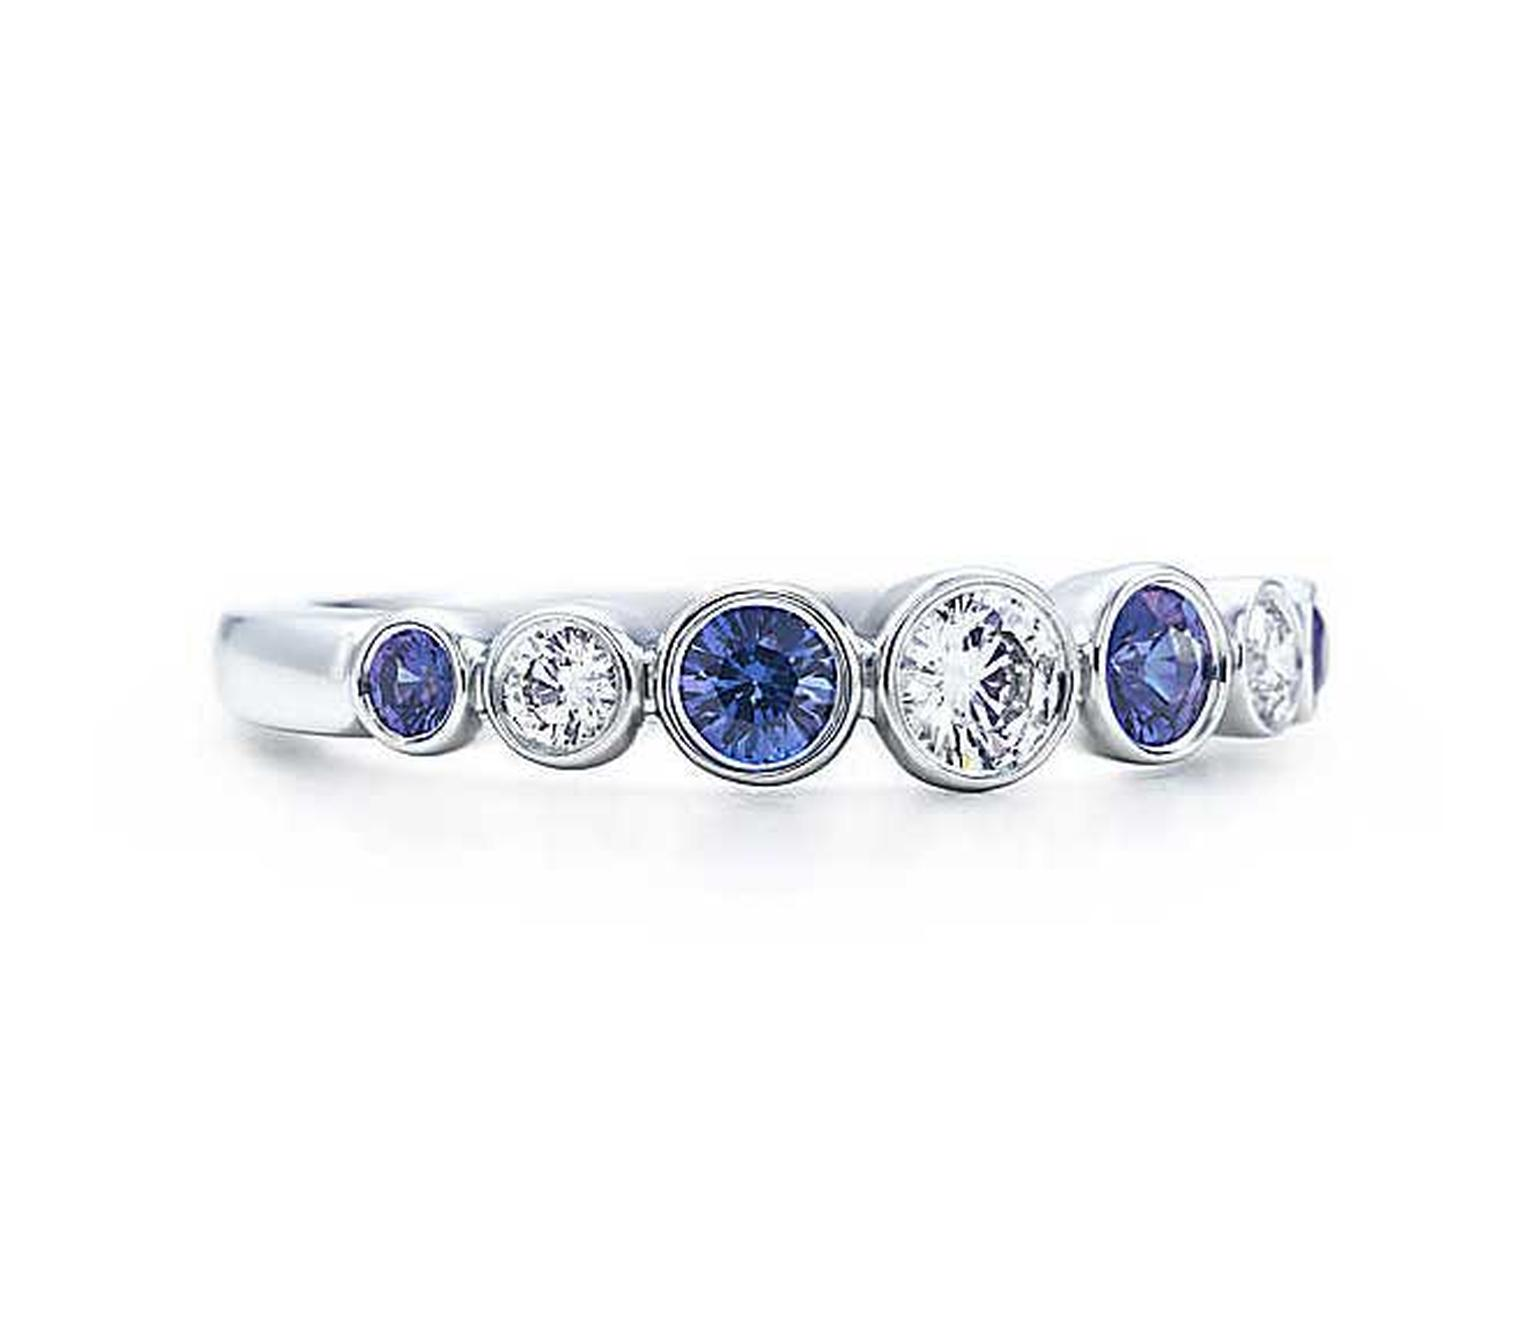 Tiffany Jazz ring in platinum with blue sapphires and diamonds.